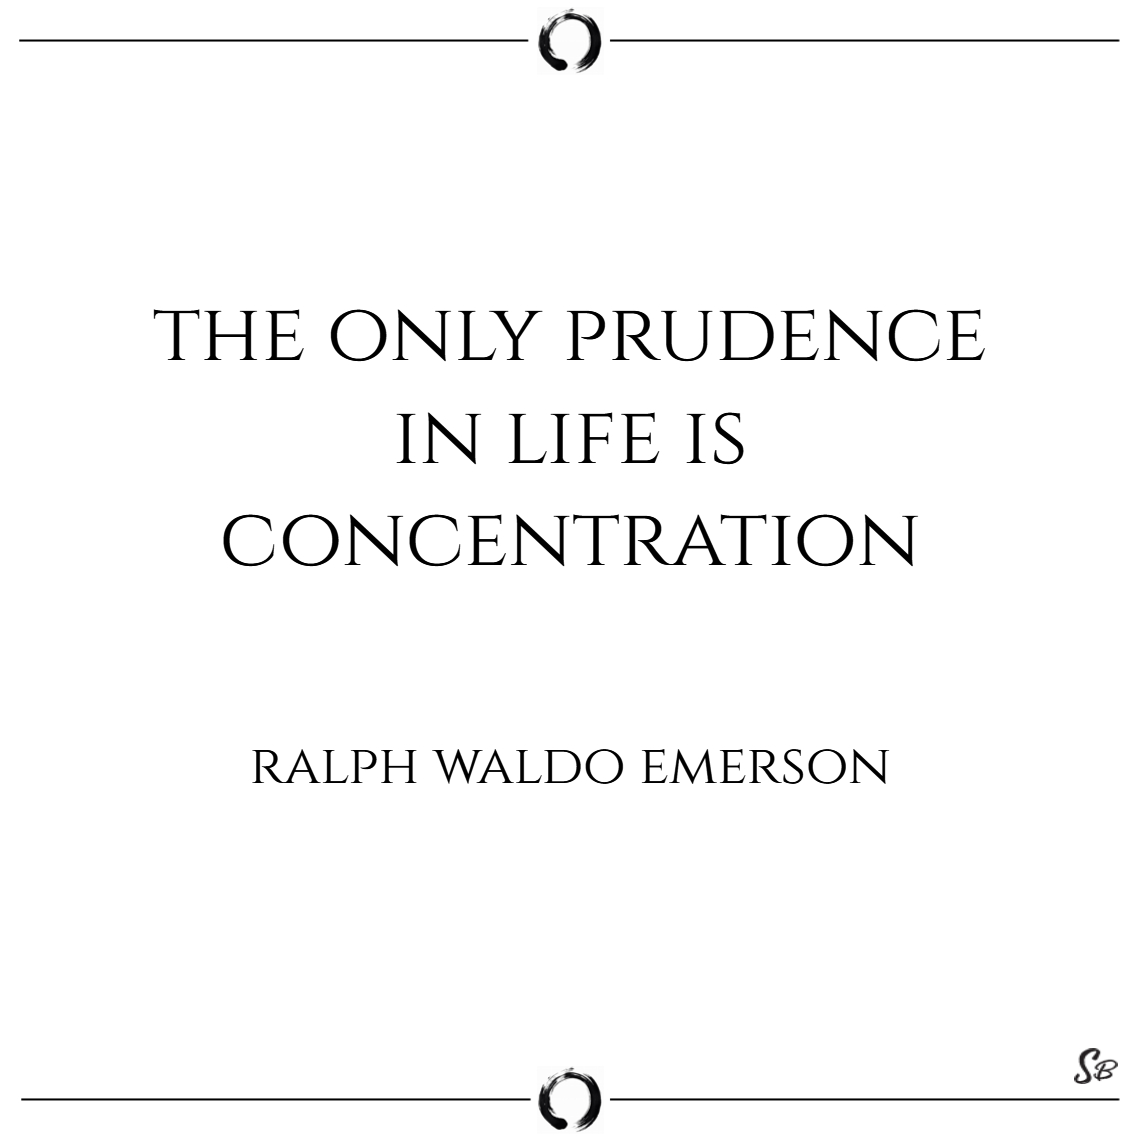 The only prudence in life is concentration. – ralp